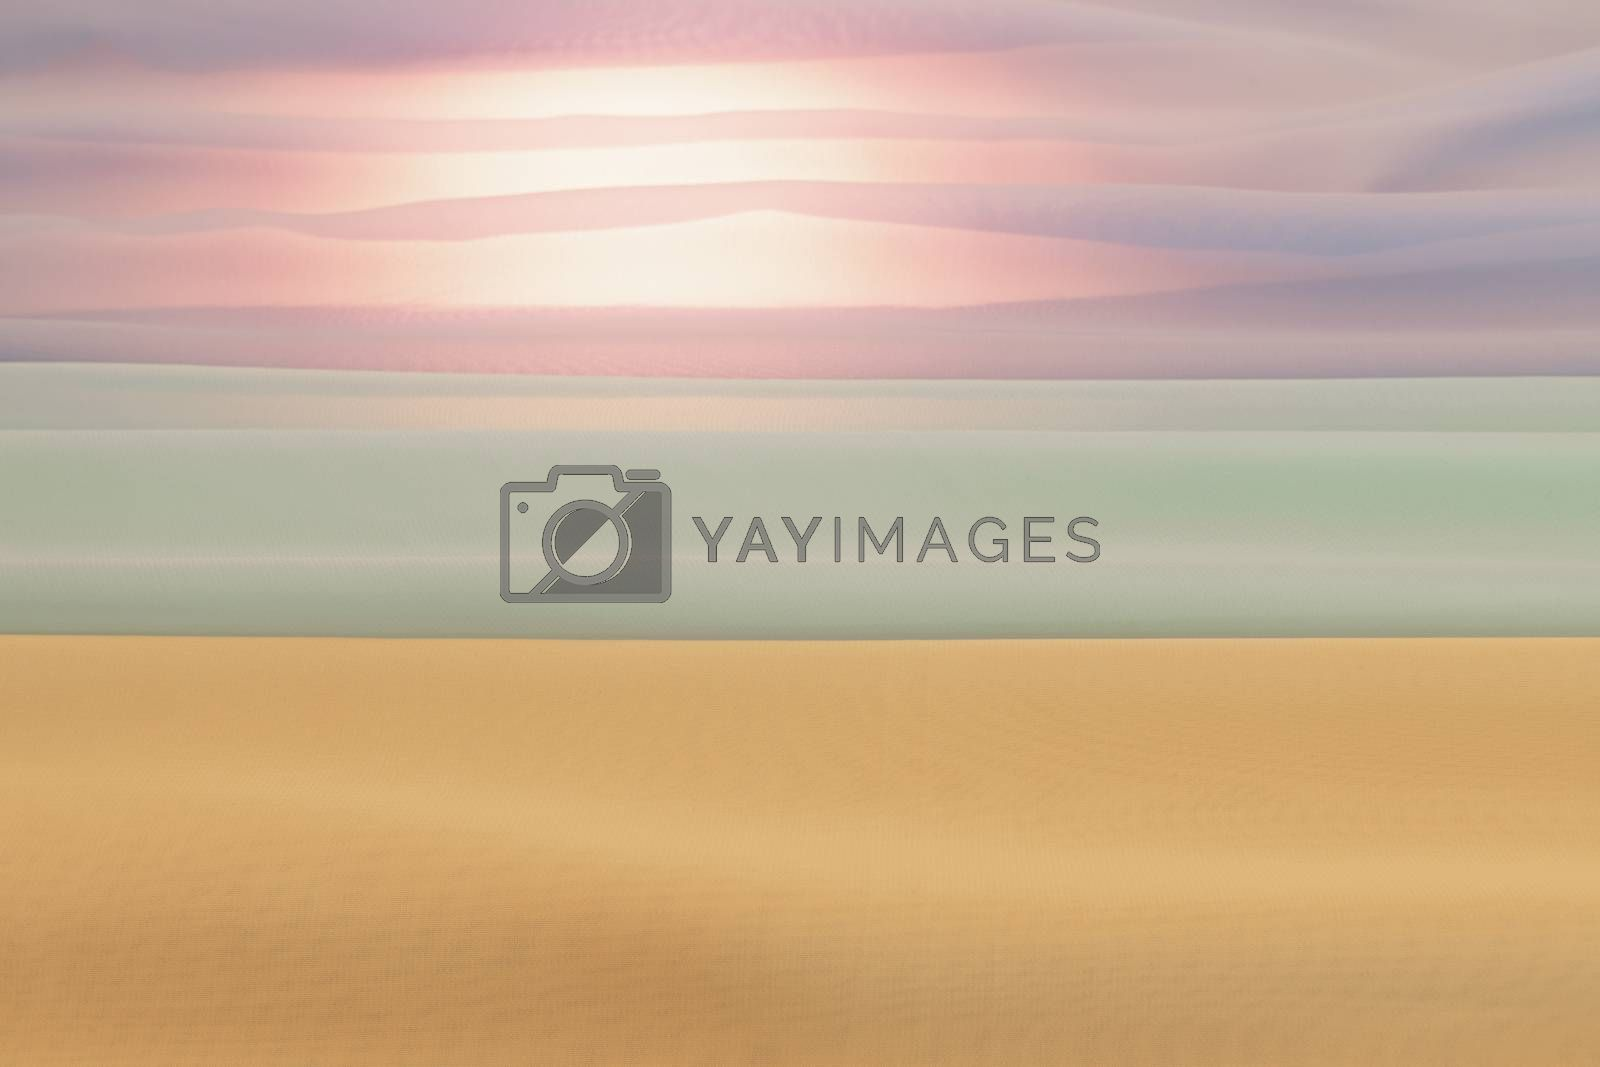 Abstract view of a beach landscape through towels